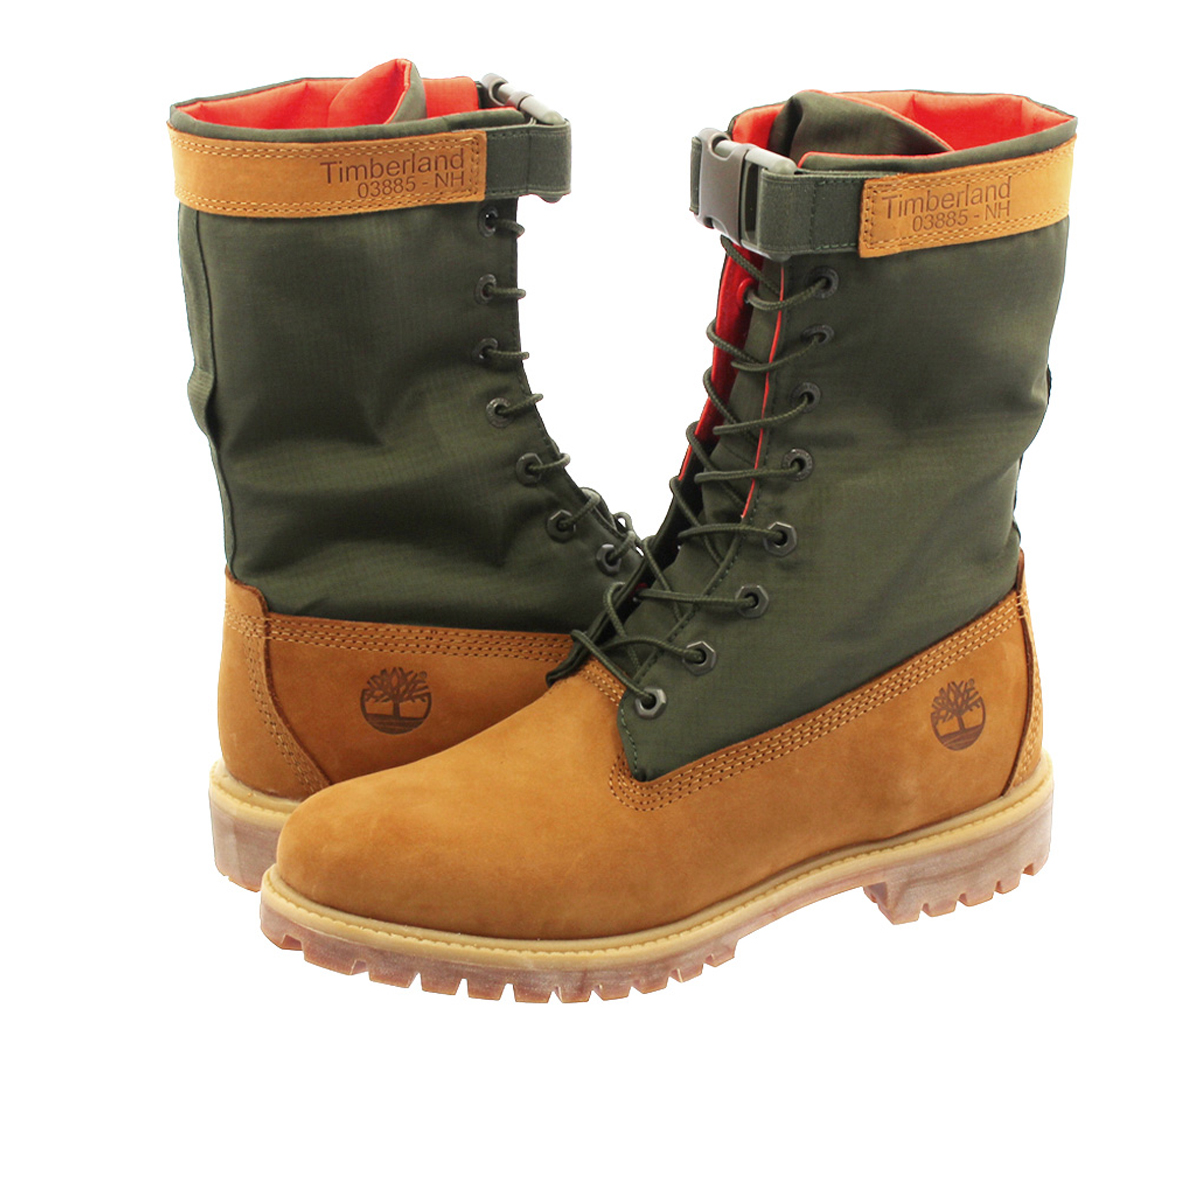 Select Shop Lowtex 6 Inches Of Timberland 6inch Premium Gaiter